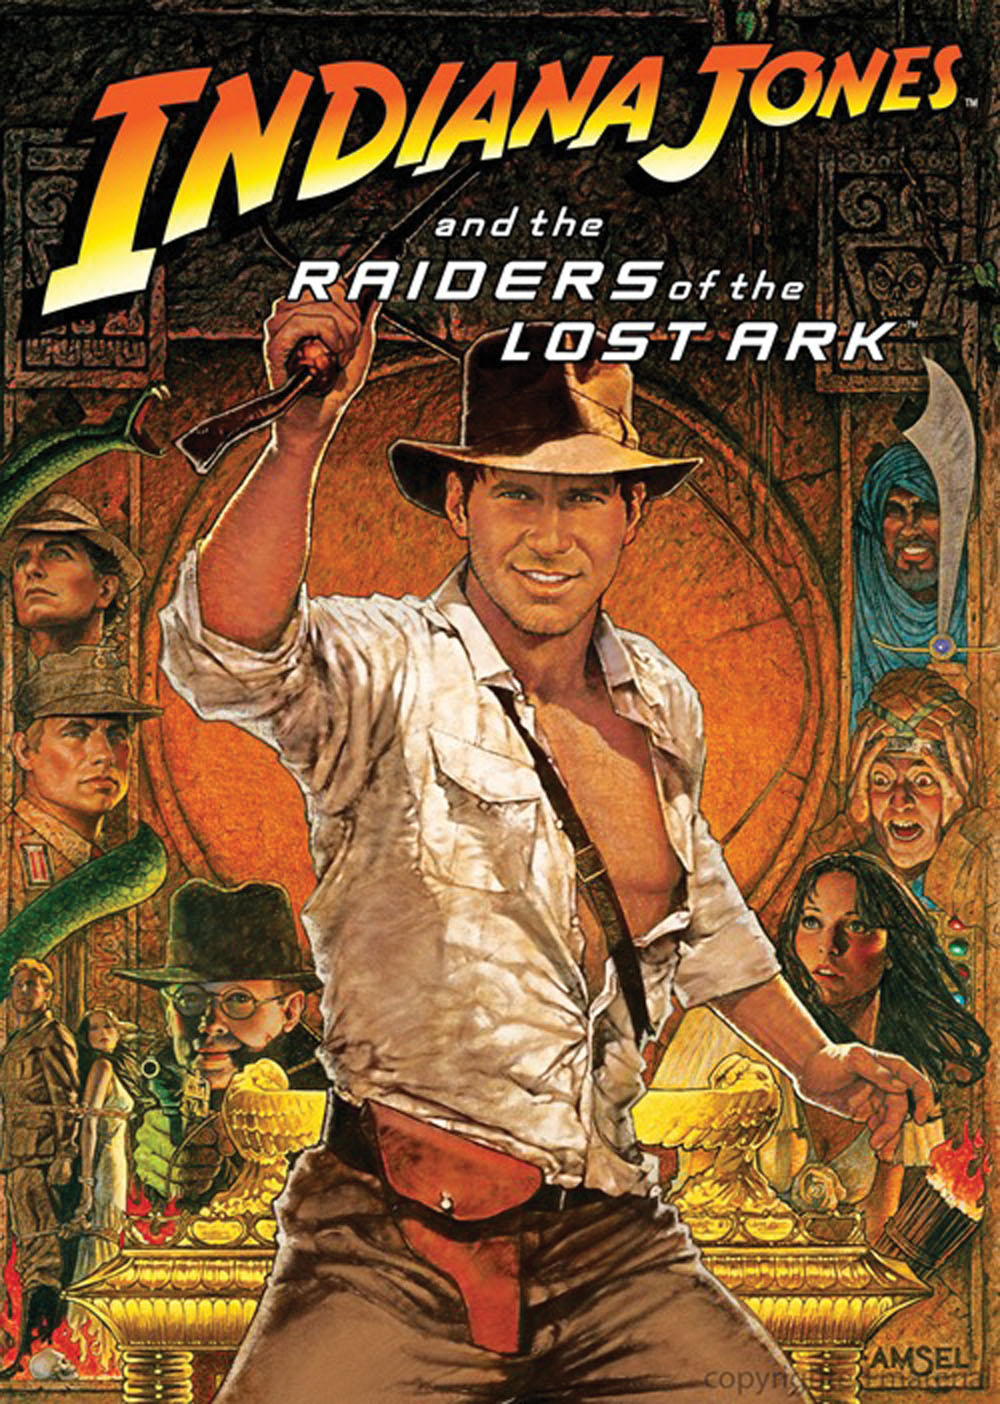 Raiders of the Lost Ark  1981 Raiders Of The Lost Ark